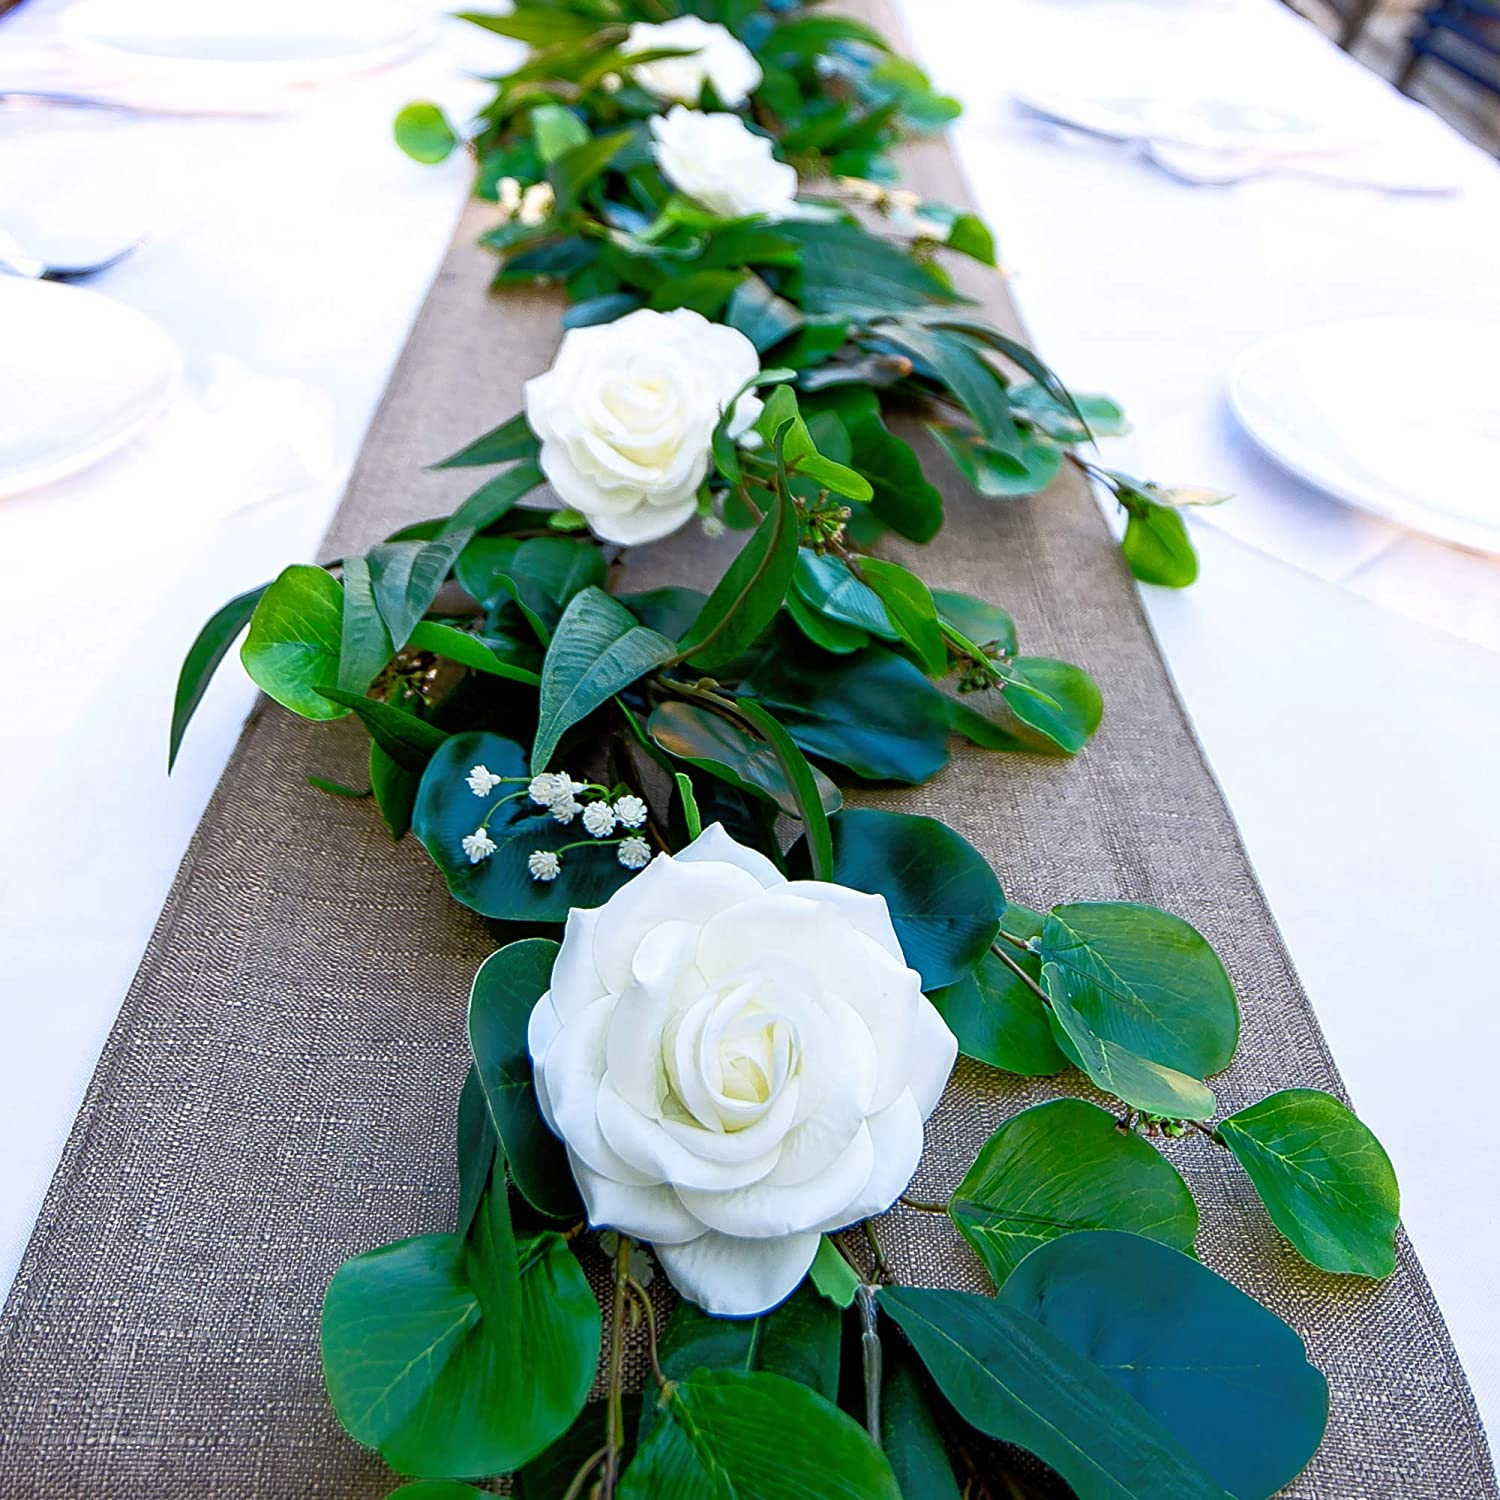 Cebliss Premium Rose Garland -5 ft Artificial Real Touch Latex White Rose Flowers with Green Eucalyptus Leaves for Hanging Decor,Table Runner,Wedding Arch,Centerpieces,Reception